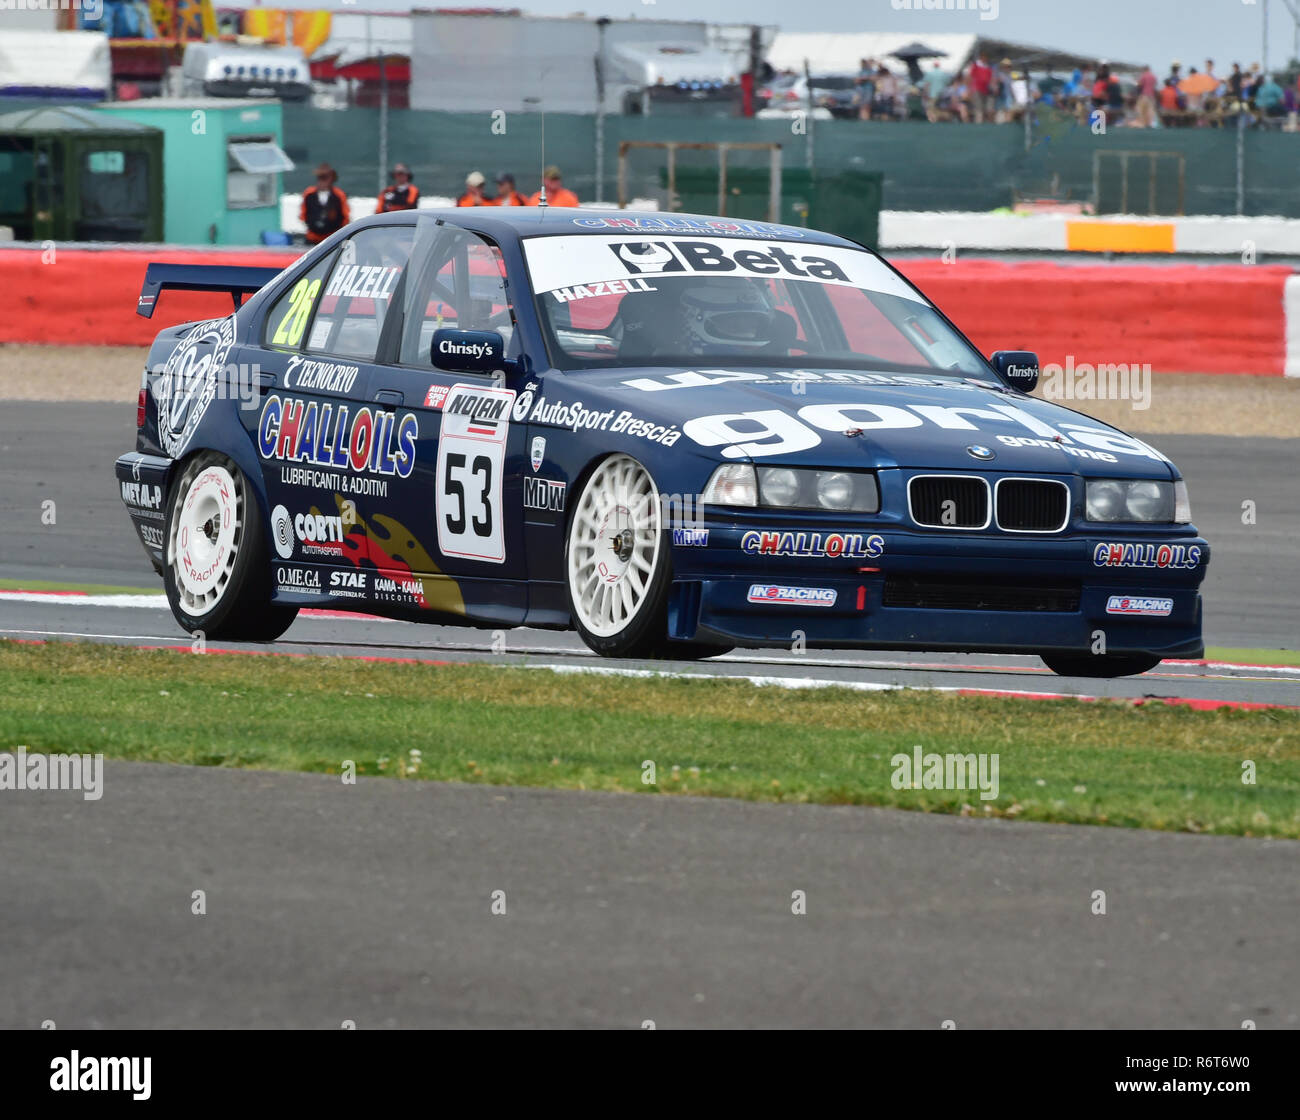 hight resolution of mark hazell bmw e36 super touring cars silverstone classic 2014 2014 classic racing cars historic racing cars hscc jet jet super touring car